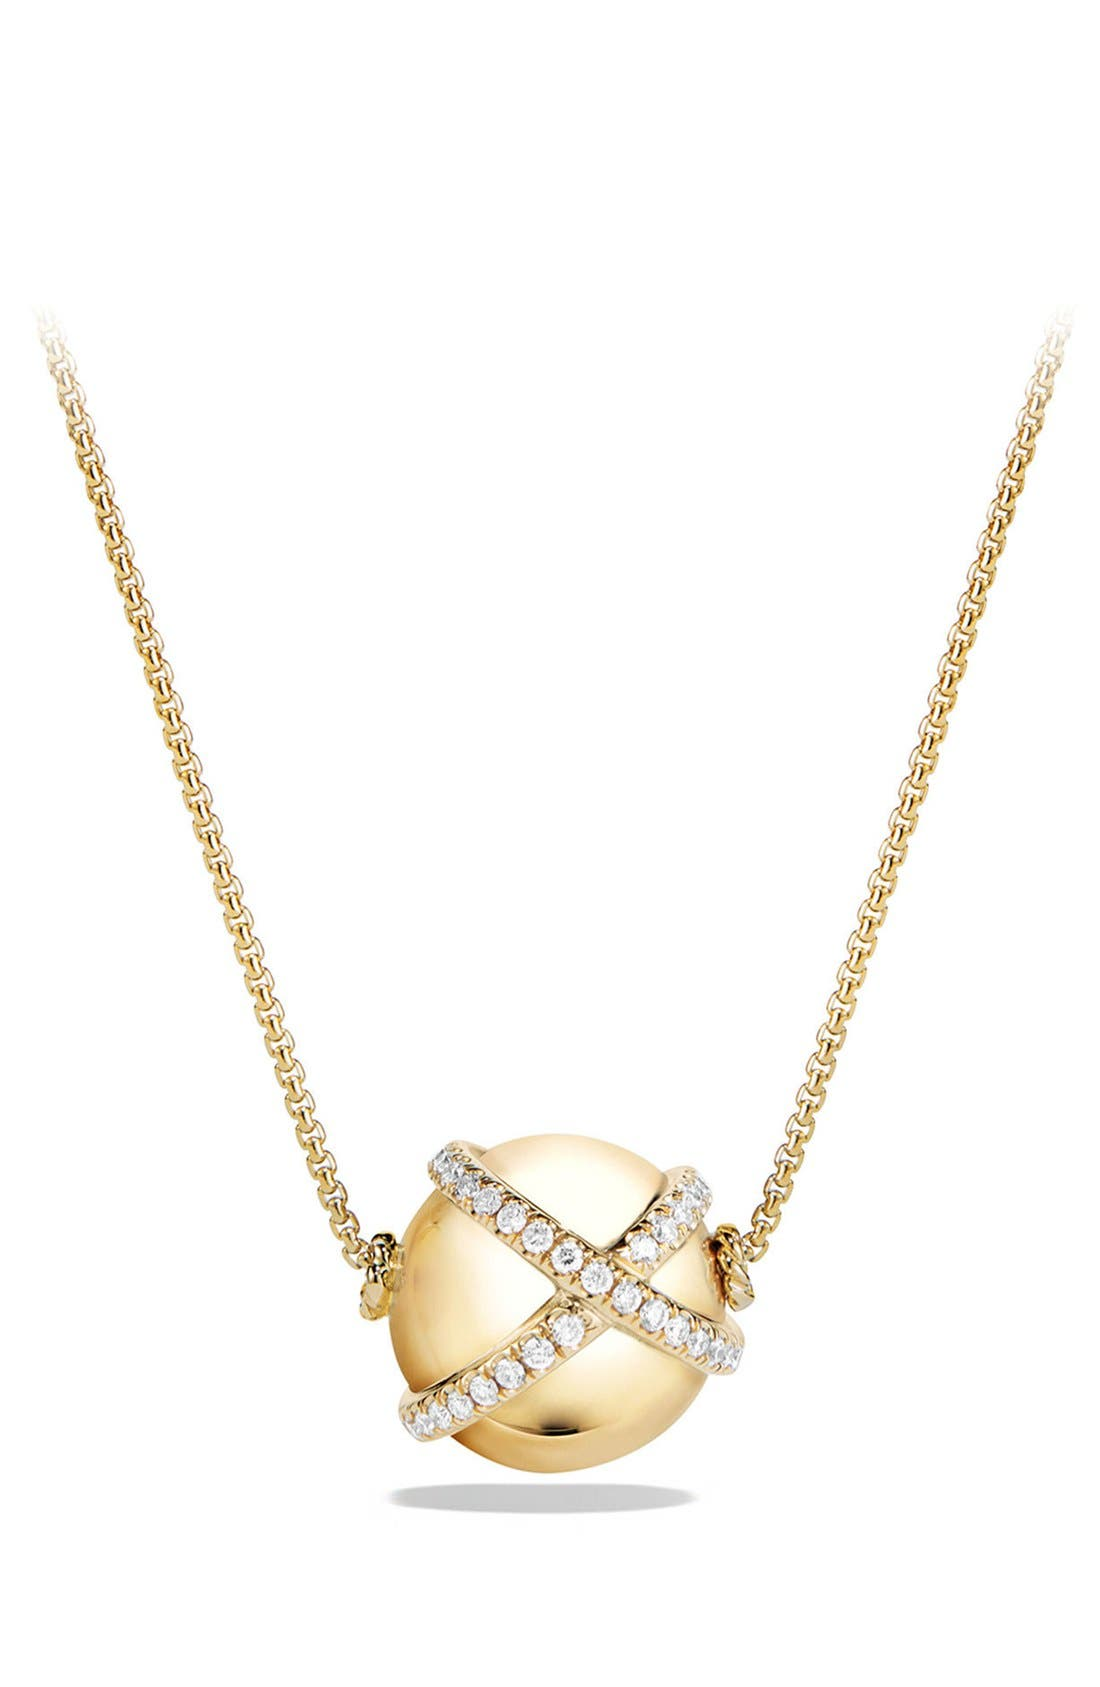 'Solari' Wrap Pendant Necklace with Pavé Diamonds in 18k Gold,                             Main thumbnail 1, color,                             YELLOW GOLD